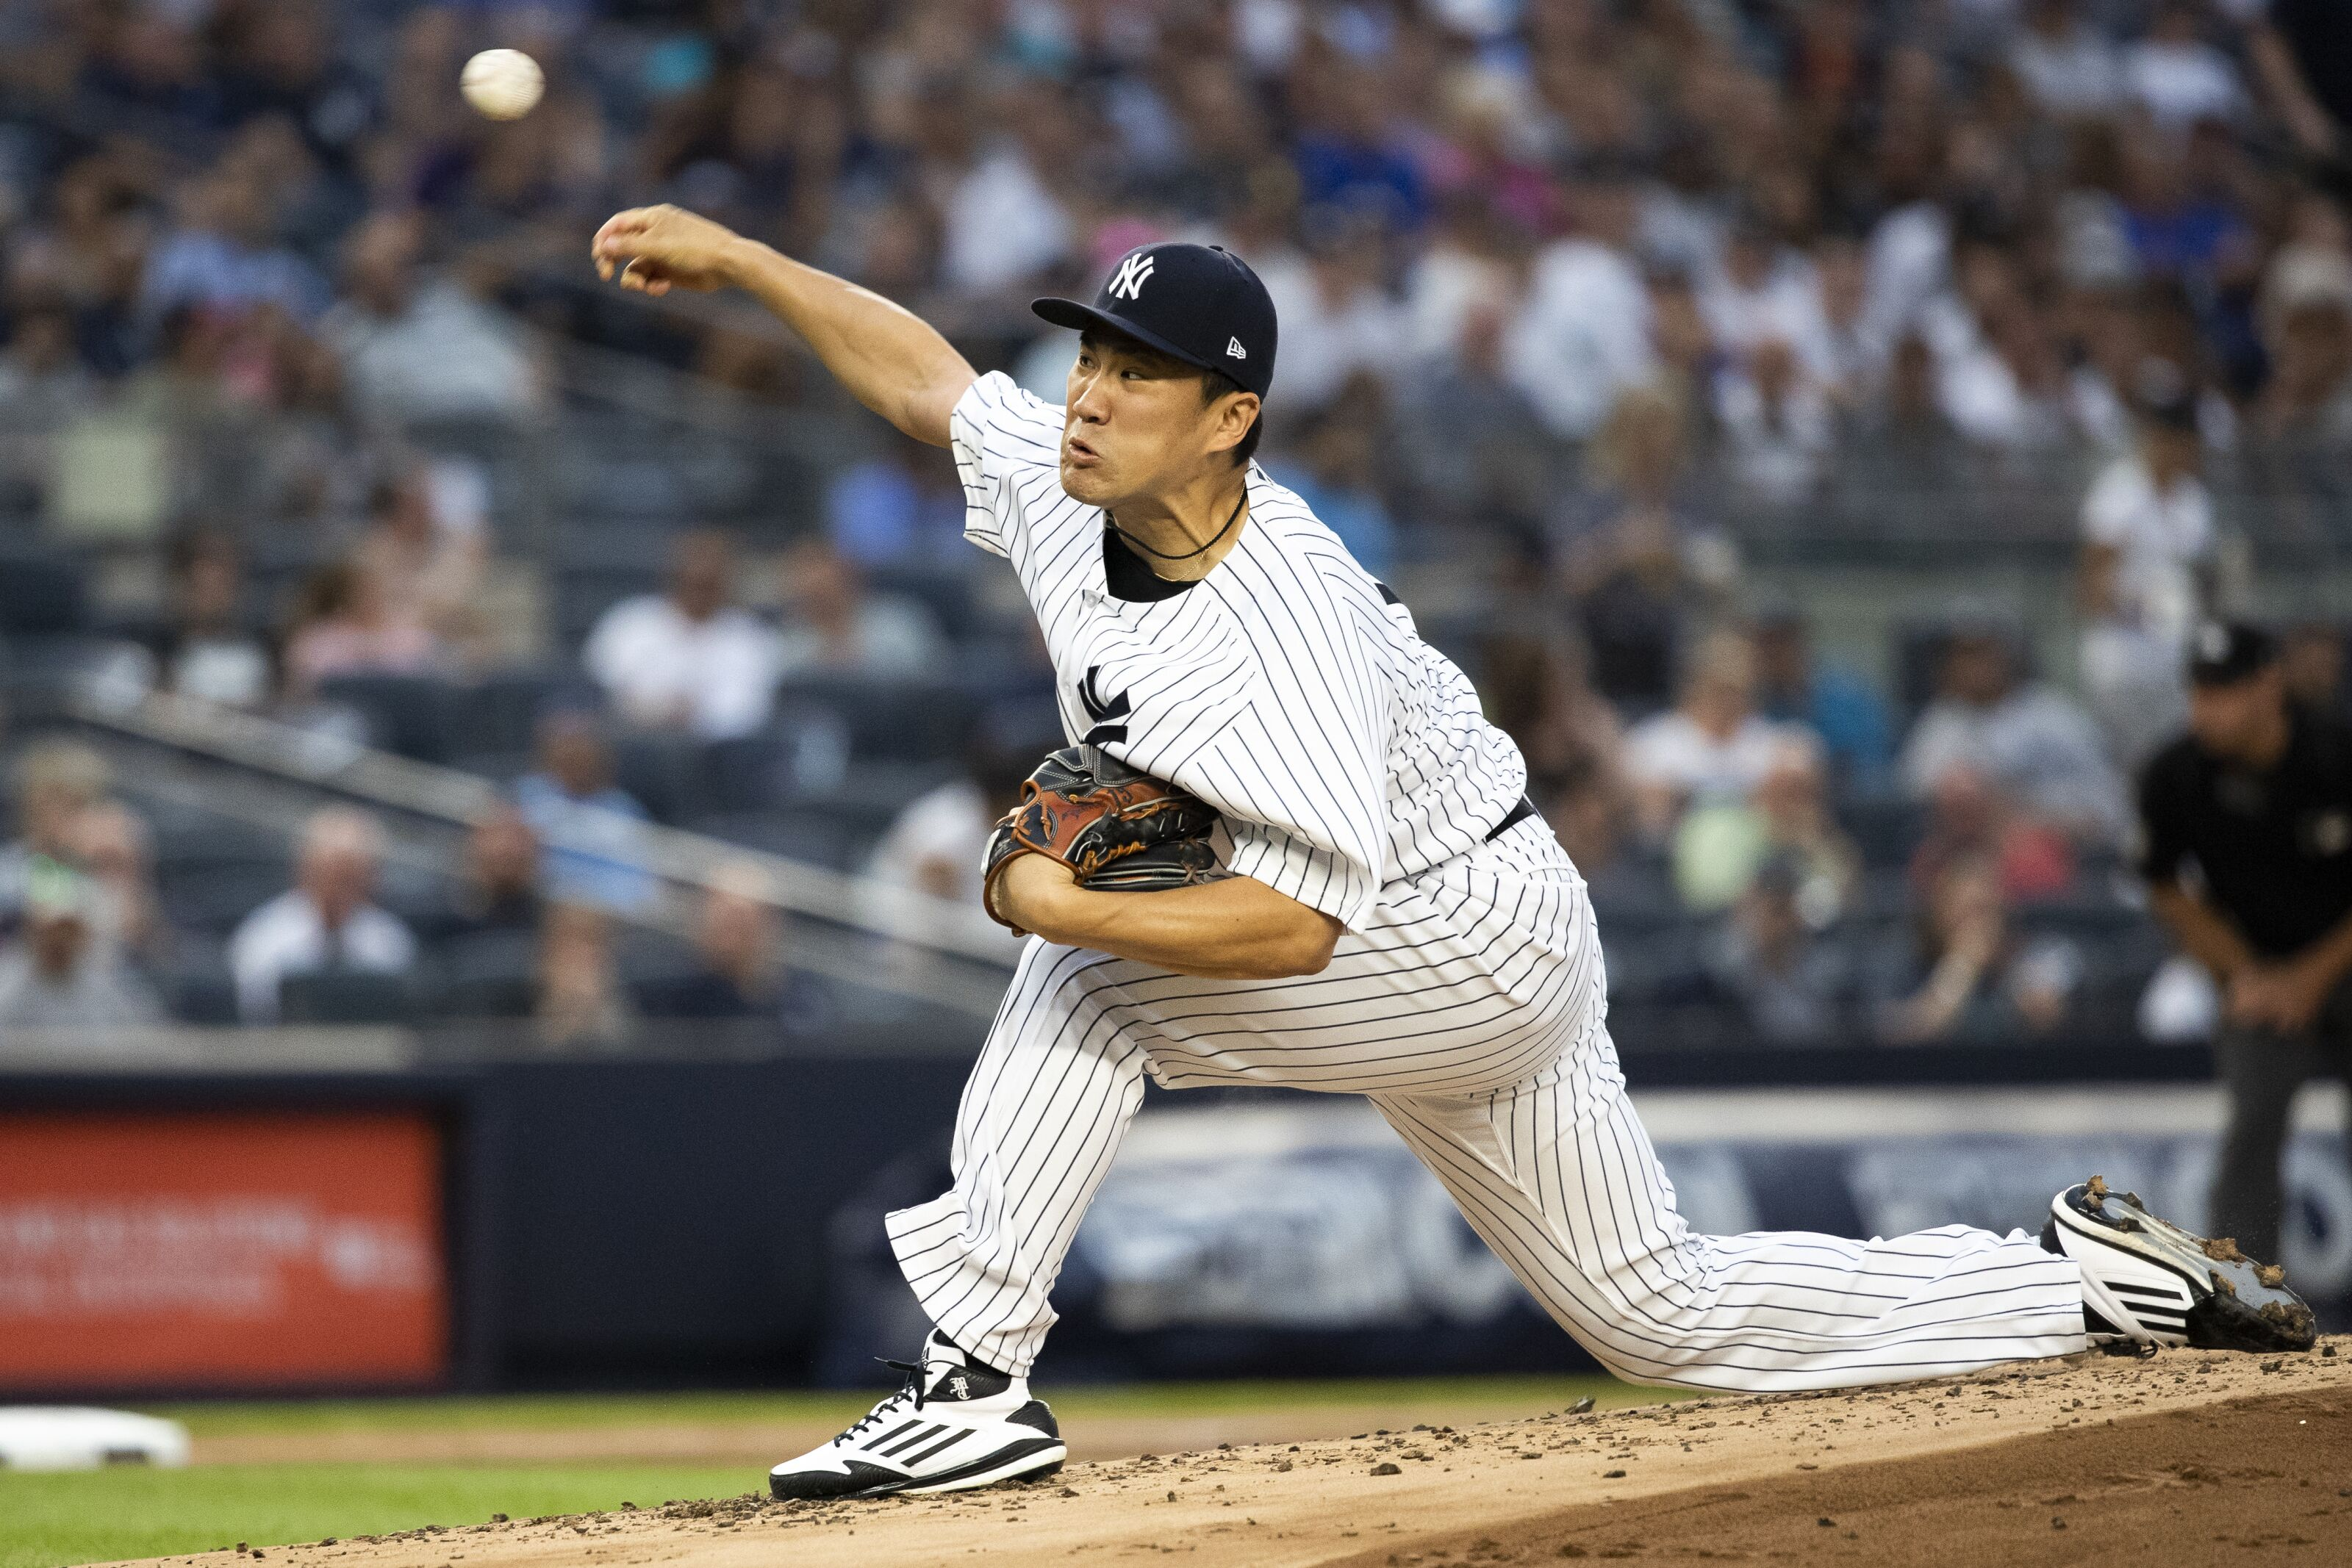 New York Yankees: Another starter goes down with an injury